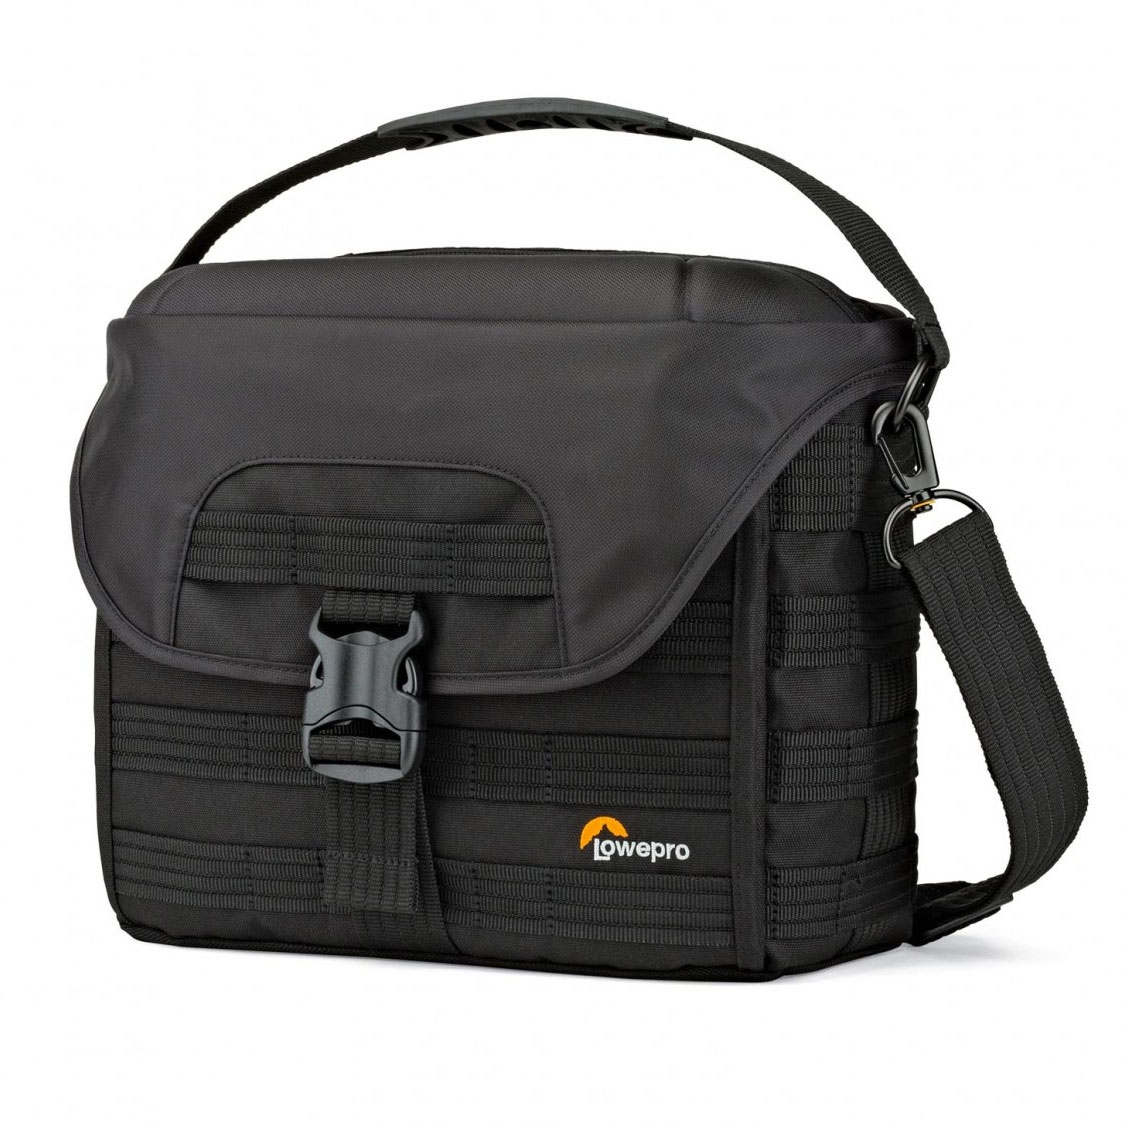 Lowepro Pro Tactic SH 180AW Bag